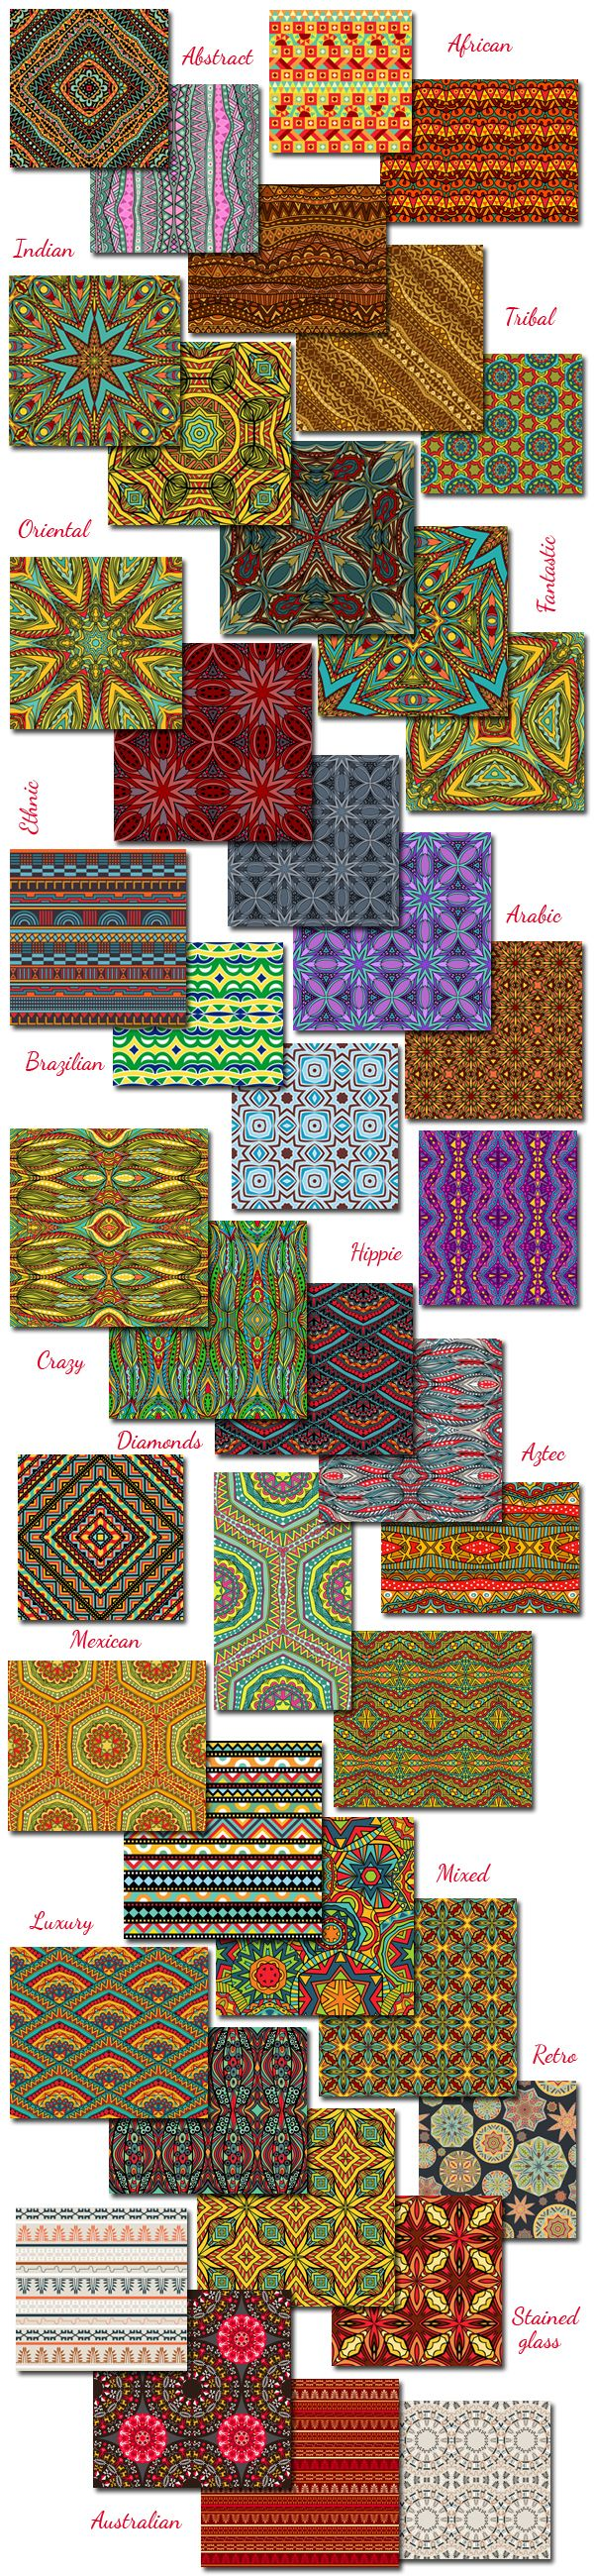 Ethnic Patterns Collection 2014 on Behance